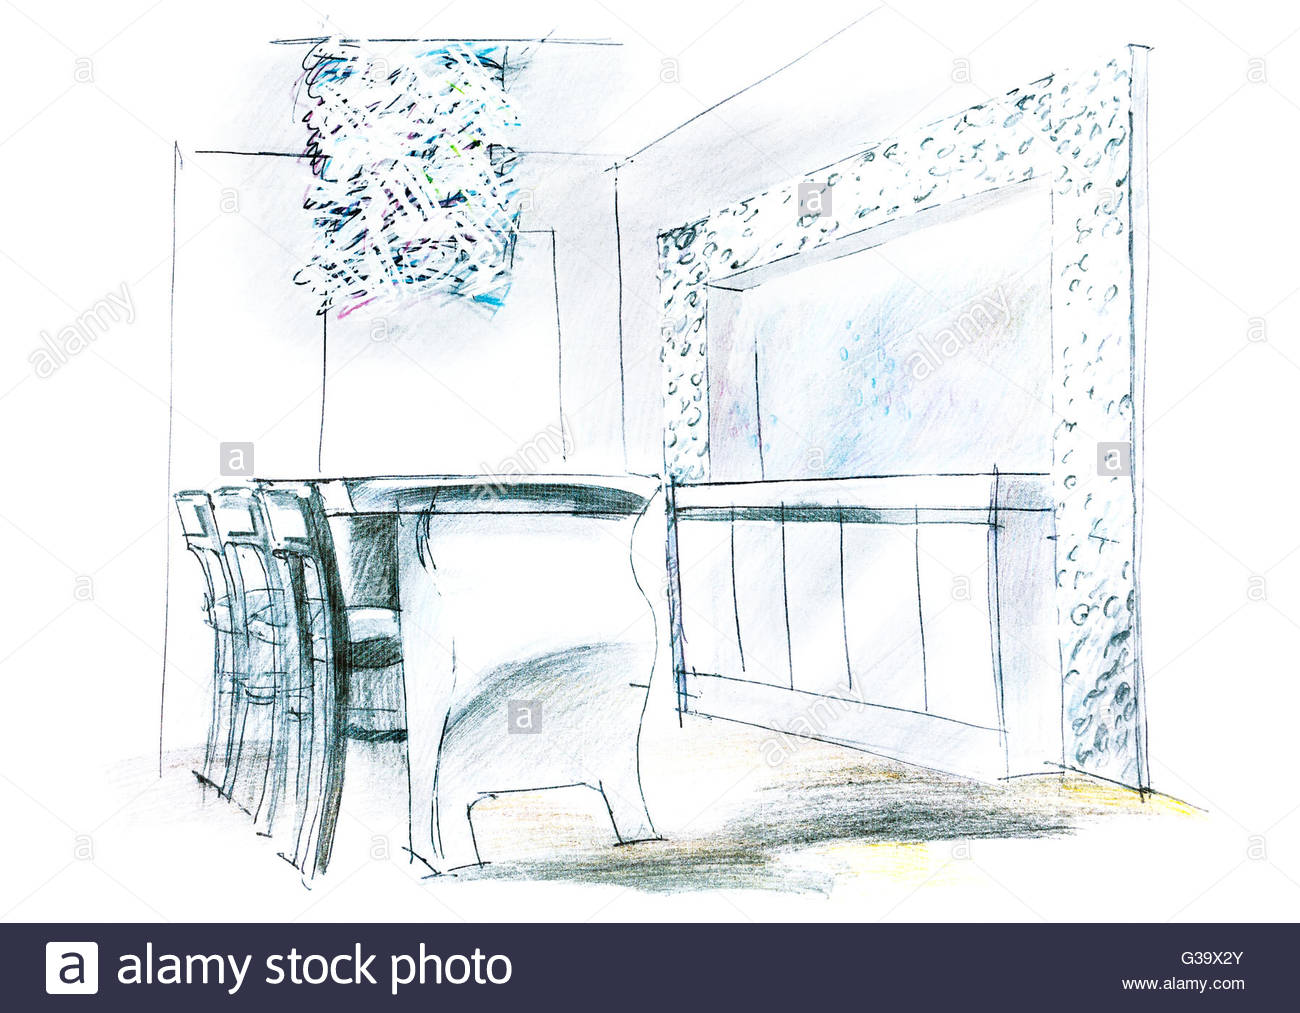 1300x1013 Freehand Sketch Perspective Architectural Drawing Of Living Room